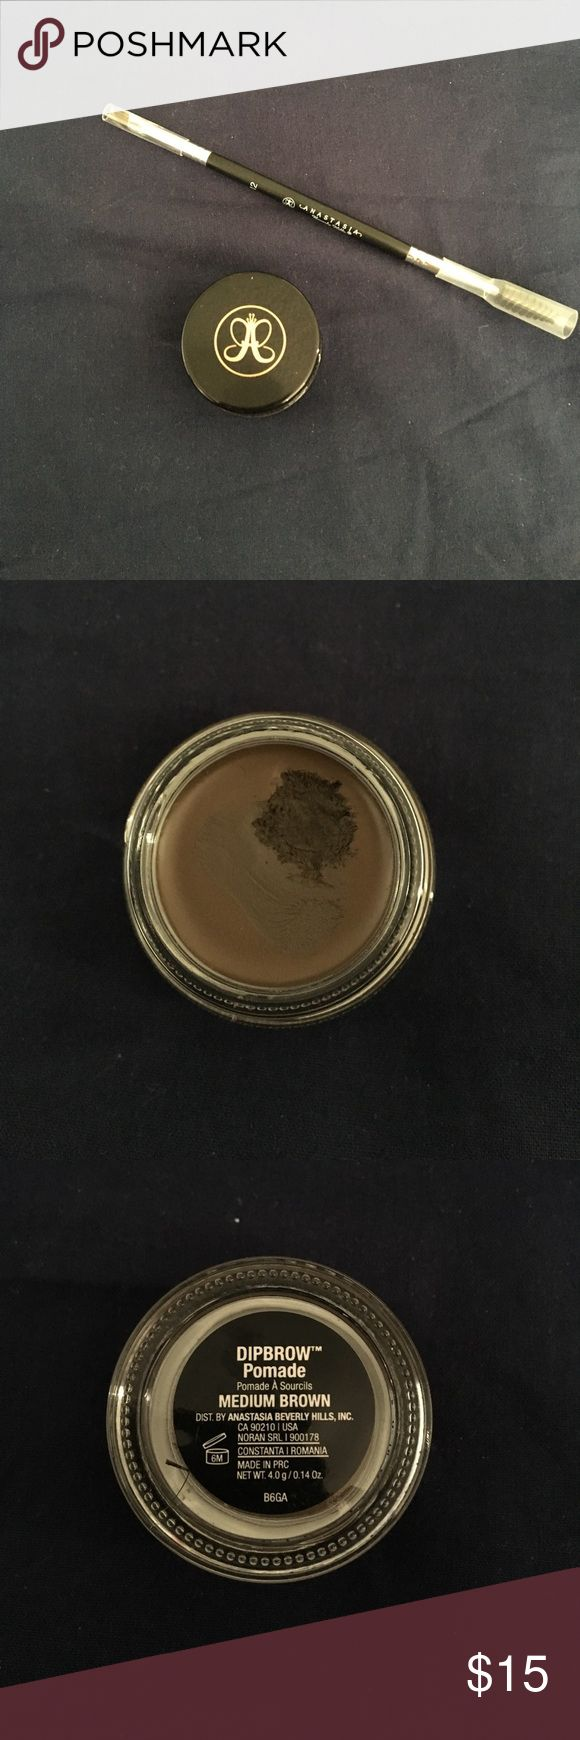 """ABH dipbrow pomade """"medium brown"""" almost brand new. only used a couple times, shown in picture. plenty of product left. 100% AUTHENTIC. bought at sephora because I had lost mine, and found my old one a week later. listing is for pomade only. Anastasia Beverly Hills Makeup Eyebrow Filler"""